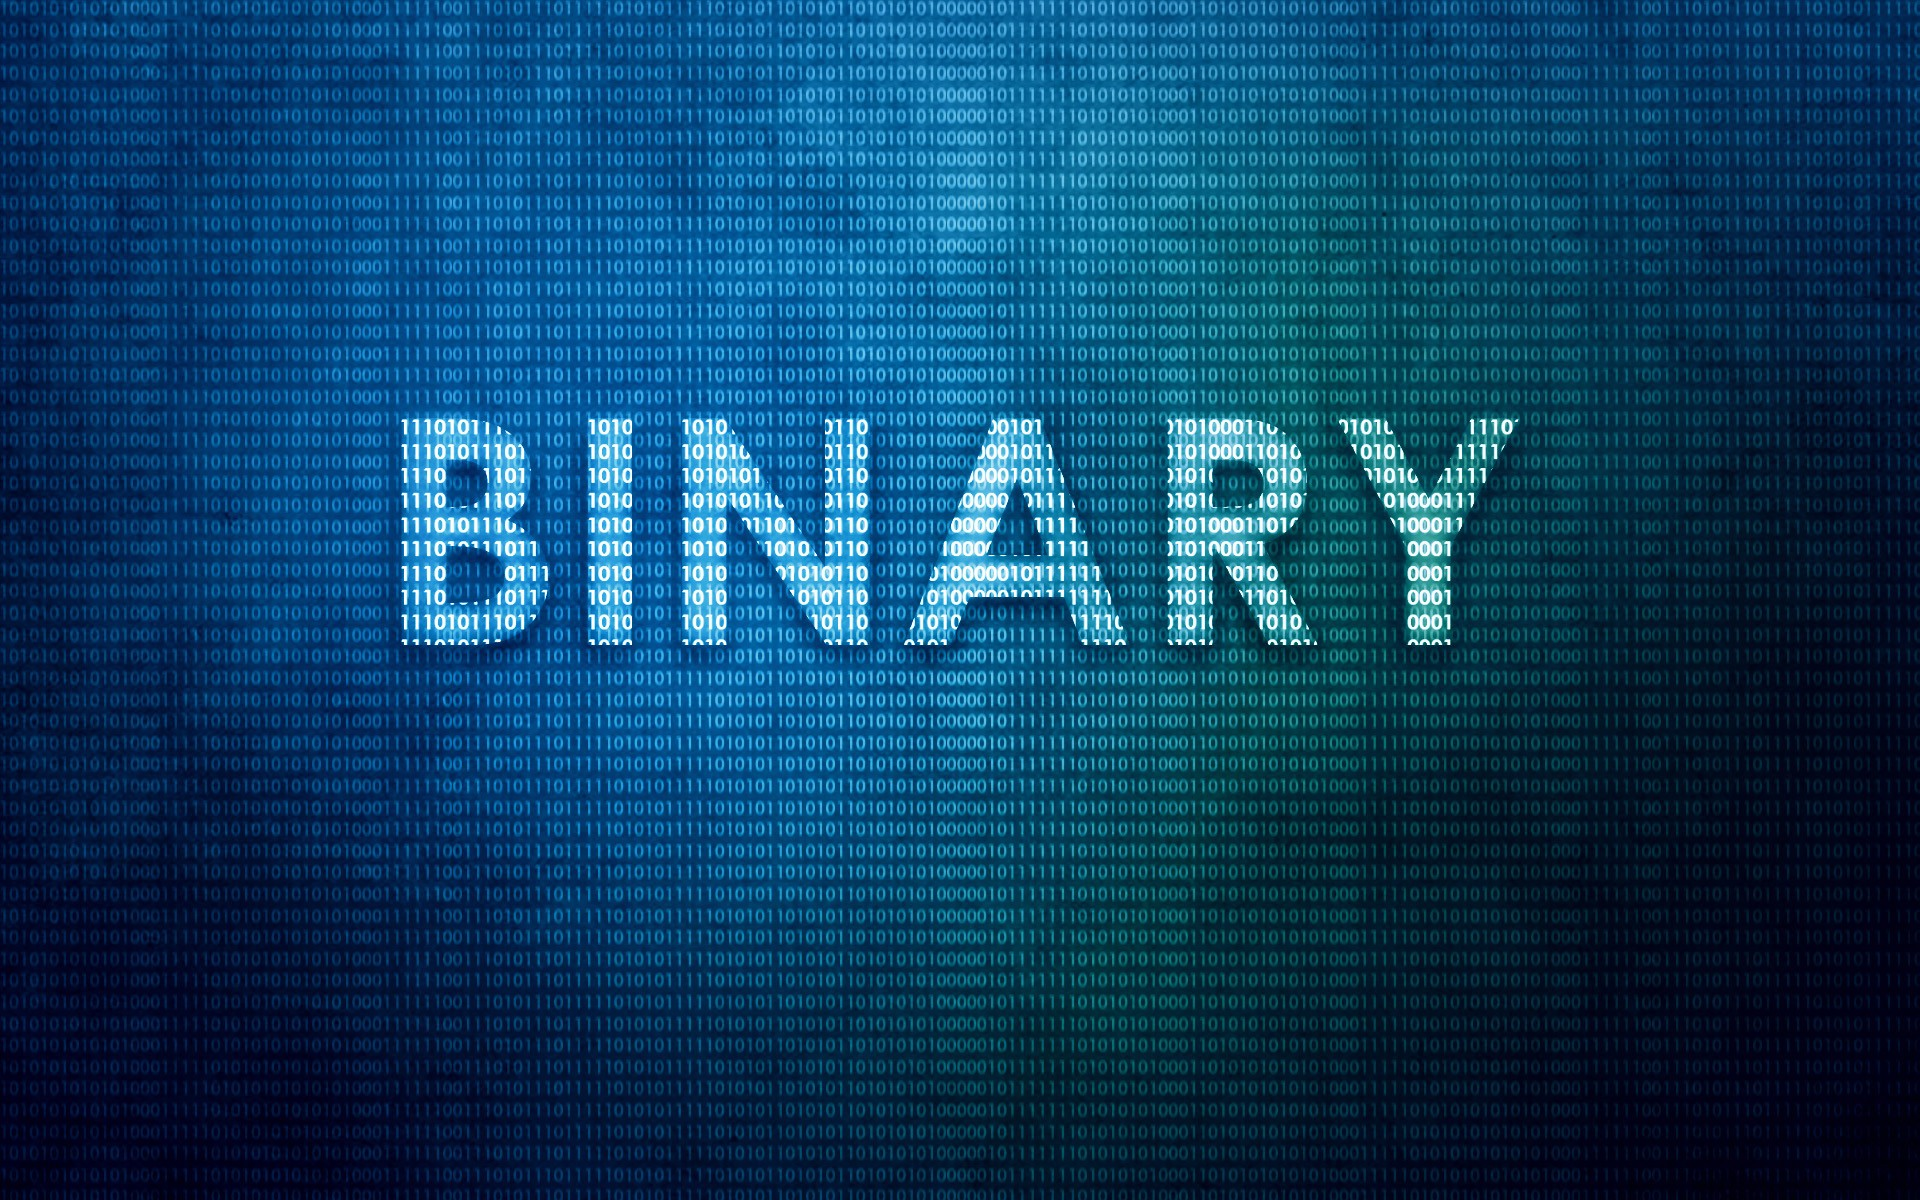 Binary Computer Wallpapers, Desktop Backgrounds 1920x1200 Id: 412683